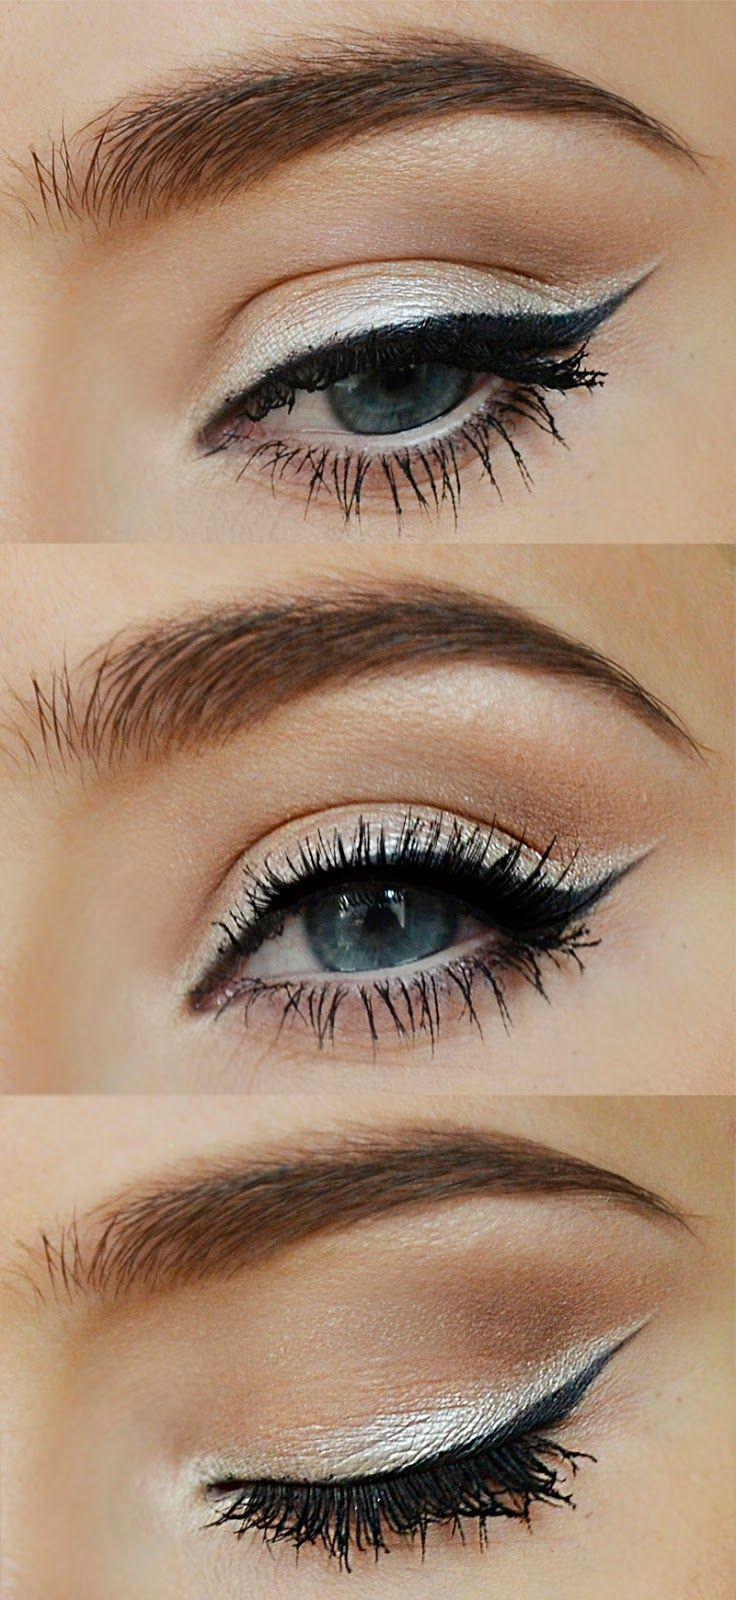 The intense contrast between merged black and white eyeliner somehow creates a gorgeous look on the eyes. Try it out yourself with the finest products from Beauty.com.